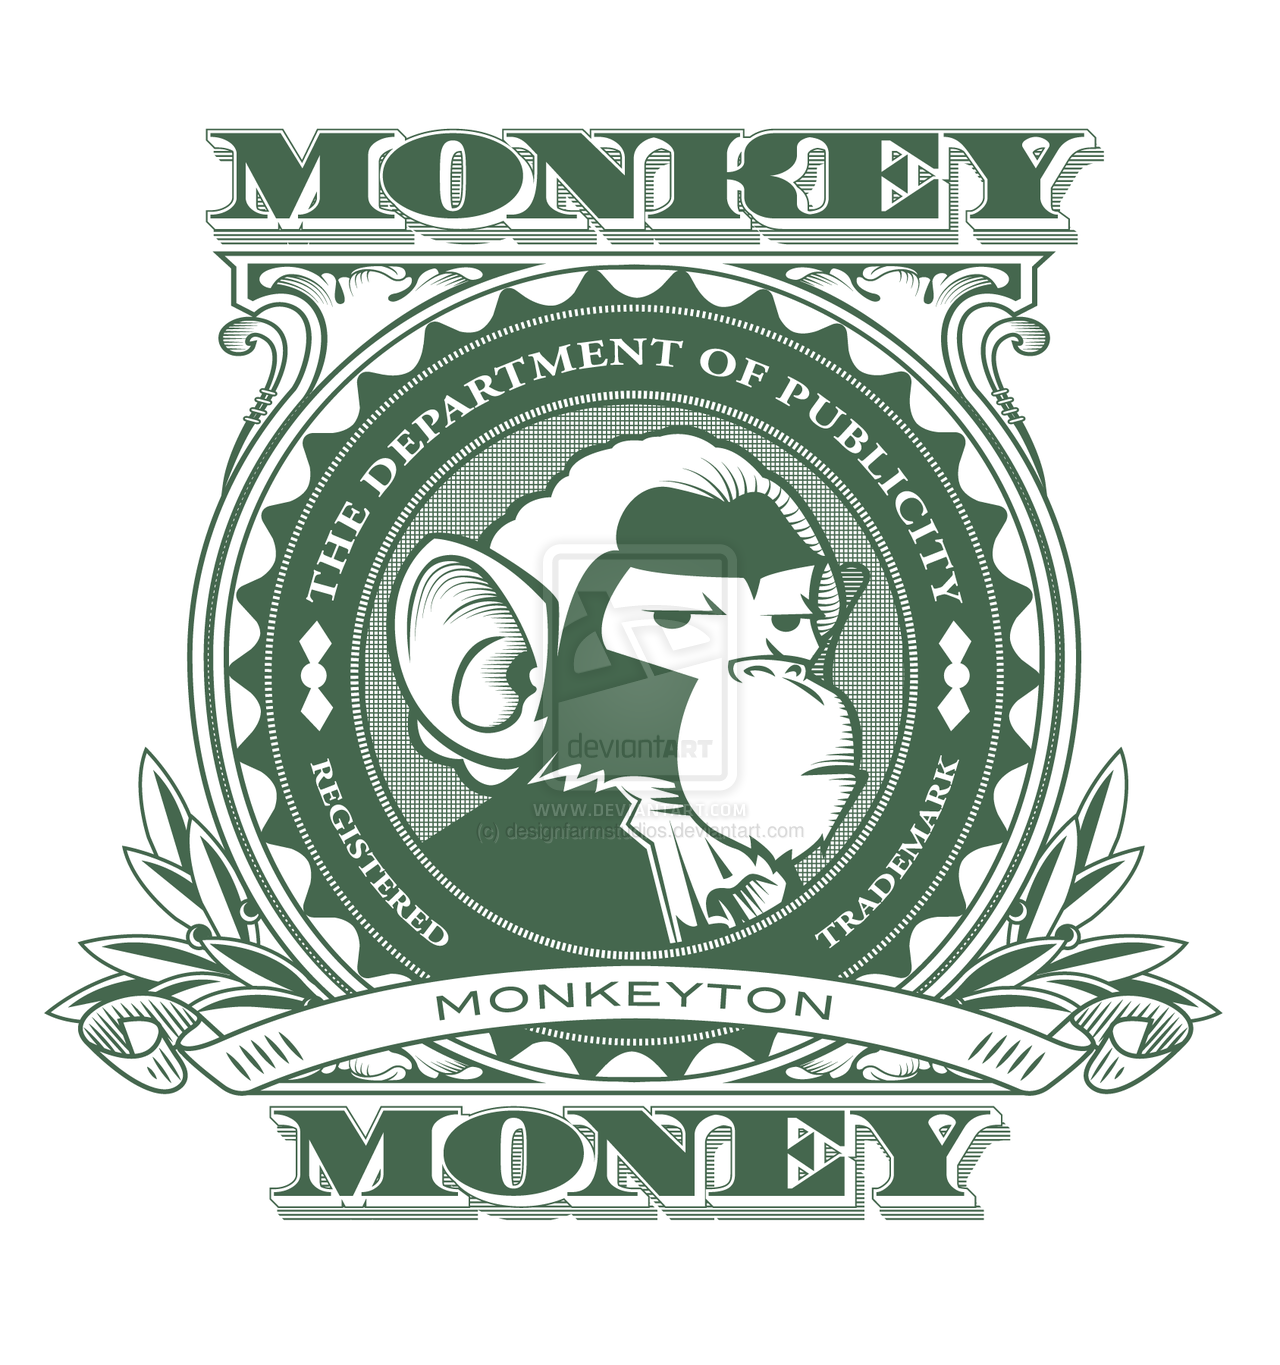 monkey logo Google Search Money logo, Monkey logo, How